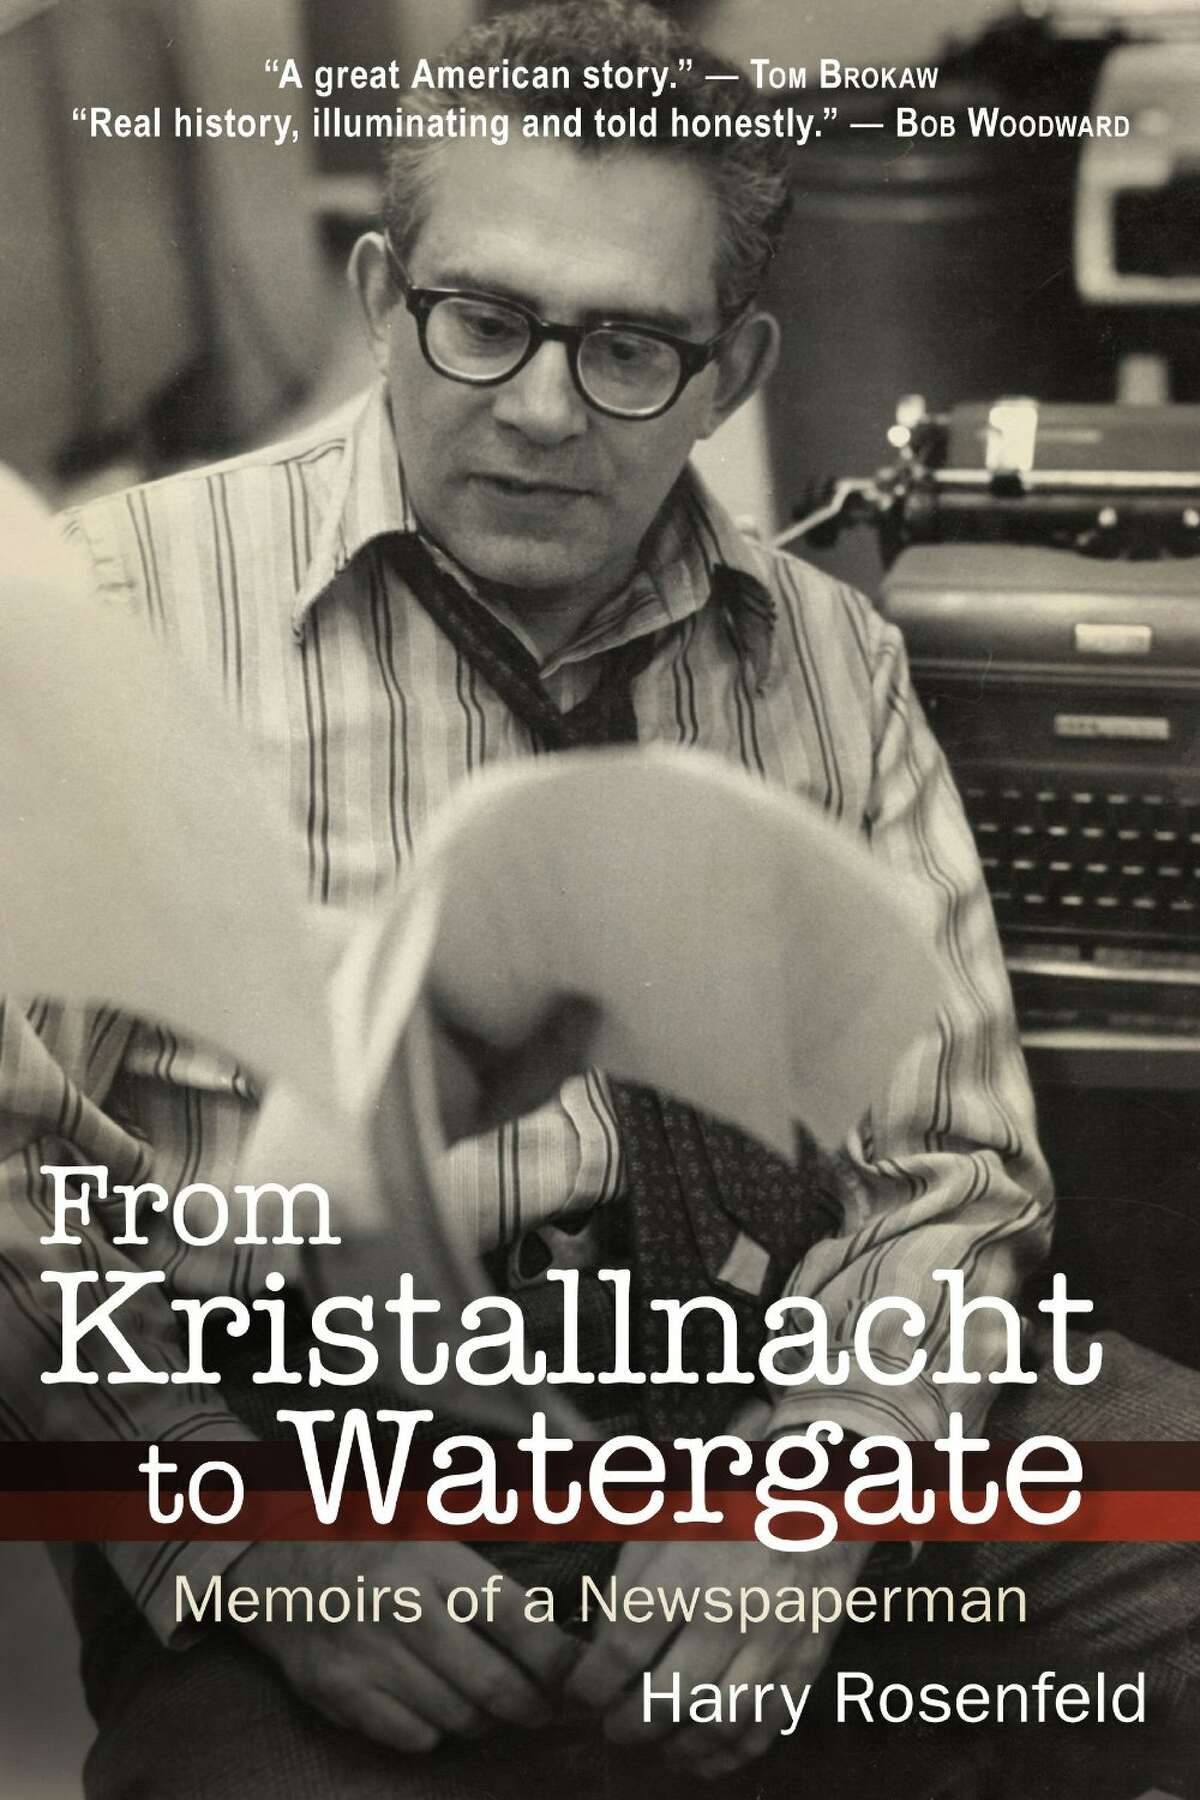 """The cover of """"From Kristallnacht to Watergate: Memoirs of a Newspaperman"""" by Harry Rosenfeld, published by SUNY Press on Sept. 15."""